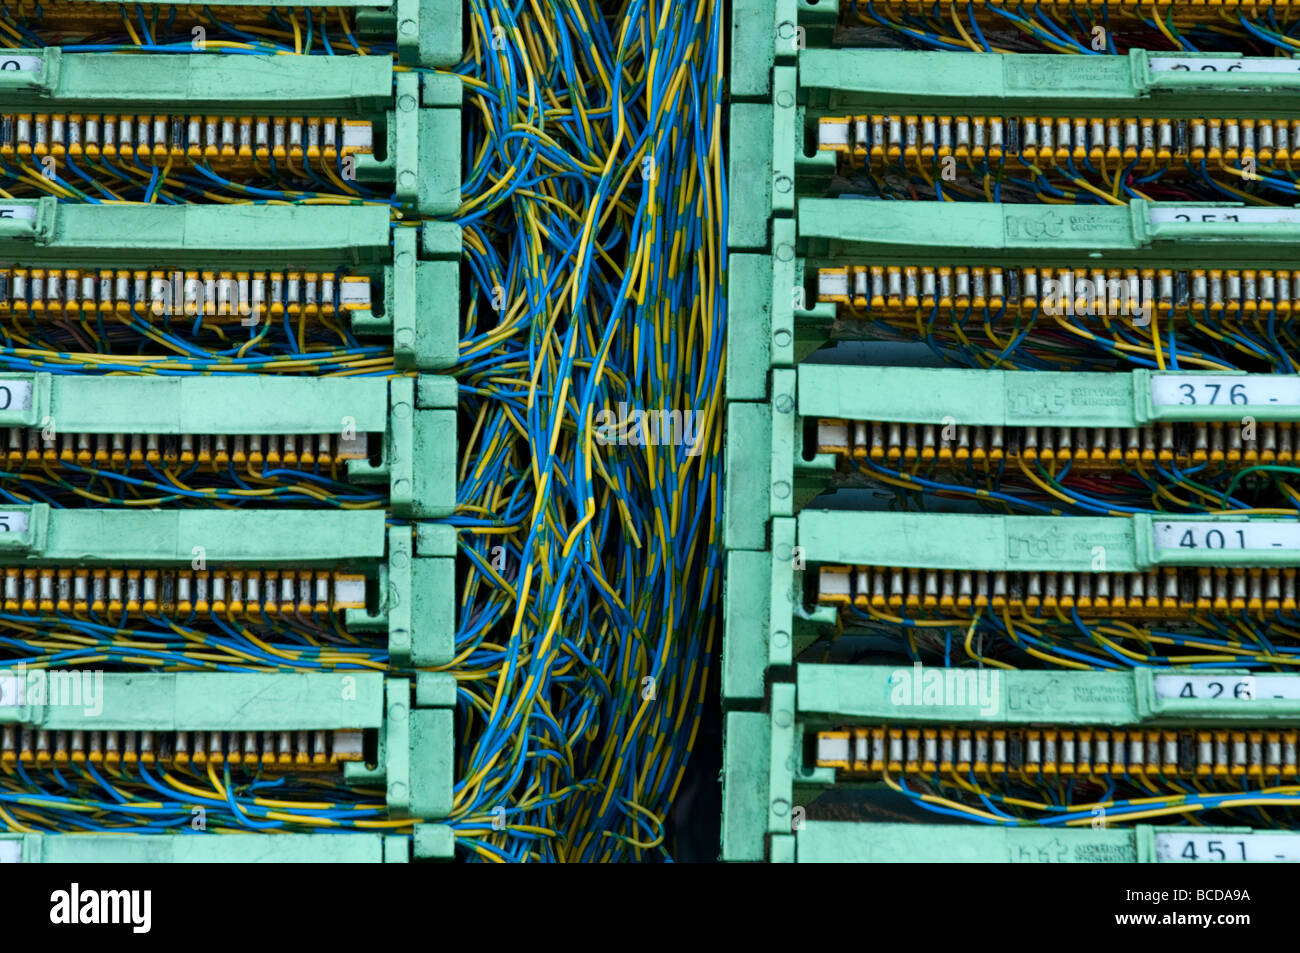 hight resolution of tangle of telecommunications wires inside phone junction box uk